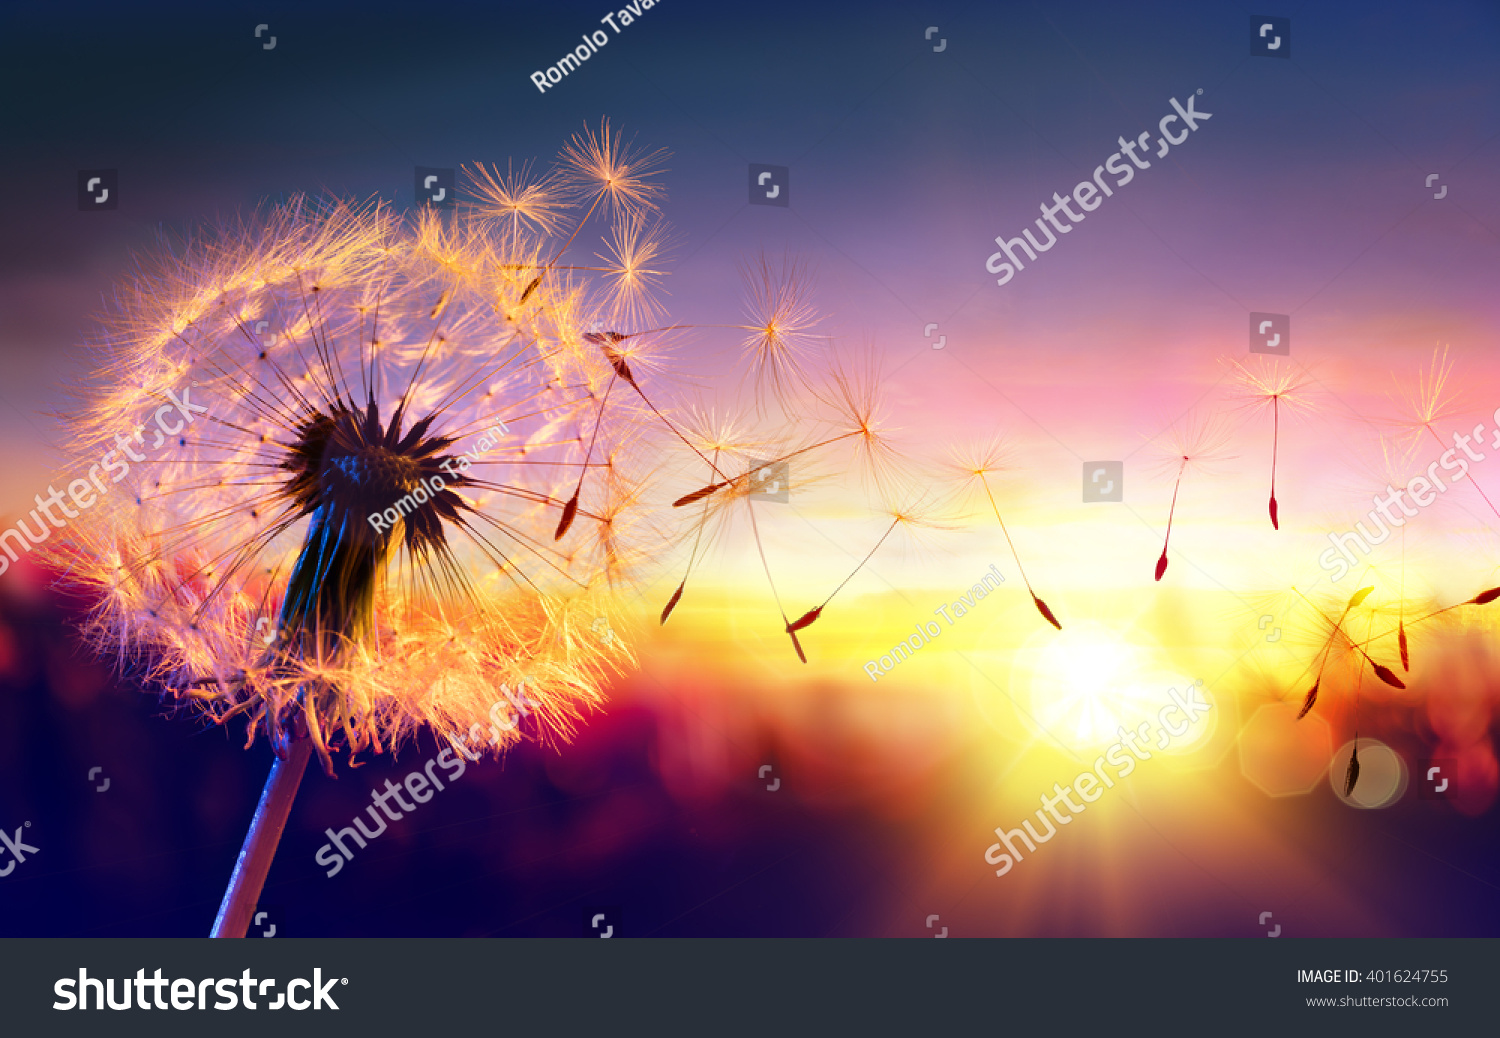 Freedom Picture Dandelion Sunset Freedom Wish Stock Photo 401624755